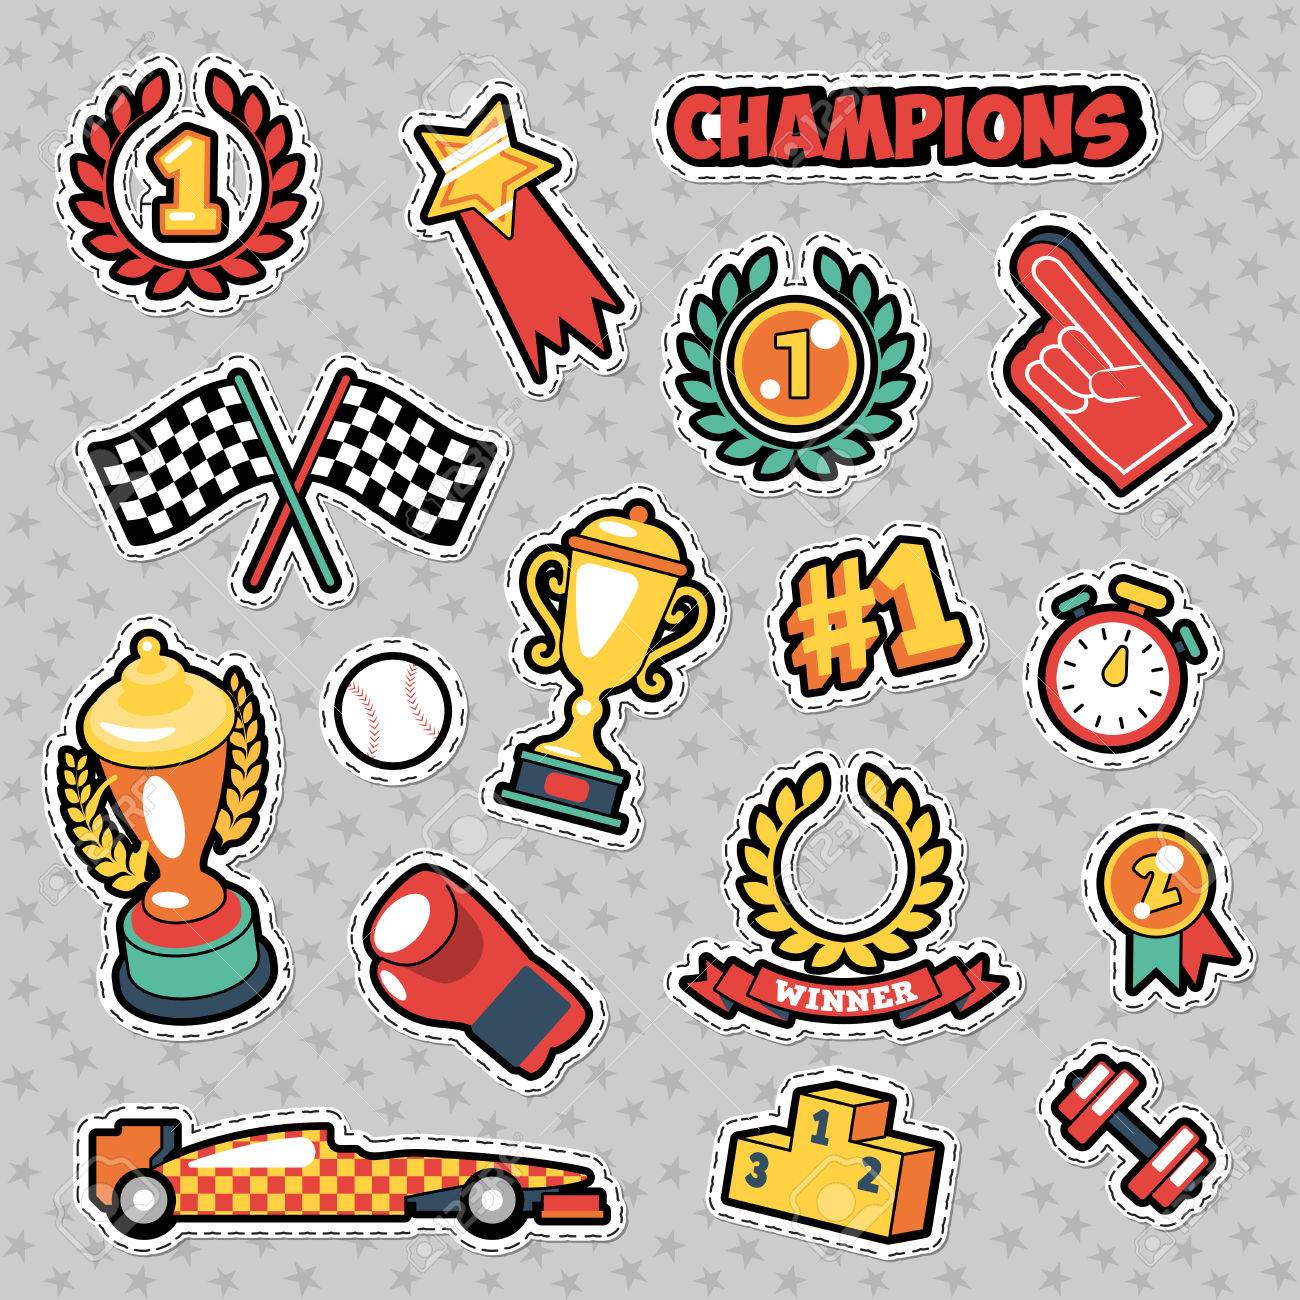 Fashion Badges, Patches, Stickers in Comic Style Champions Theme with Cups Banque d'images - 75097577